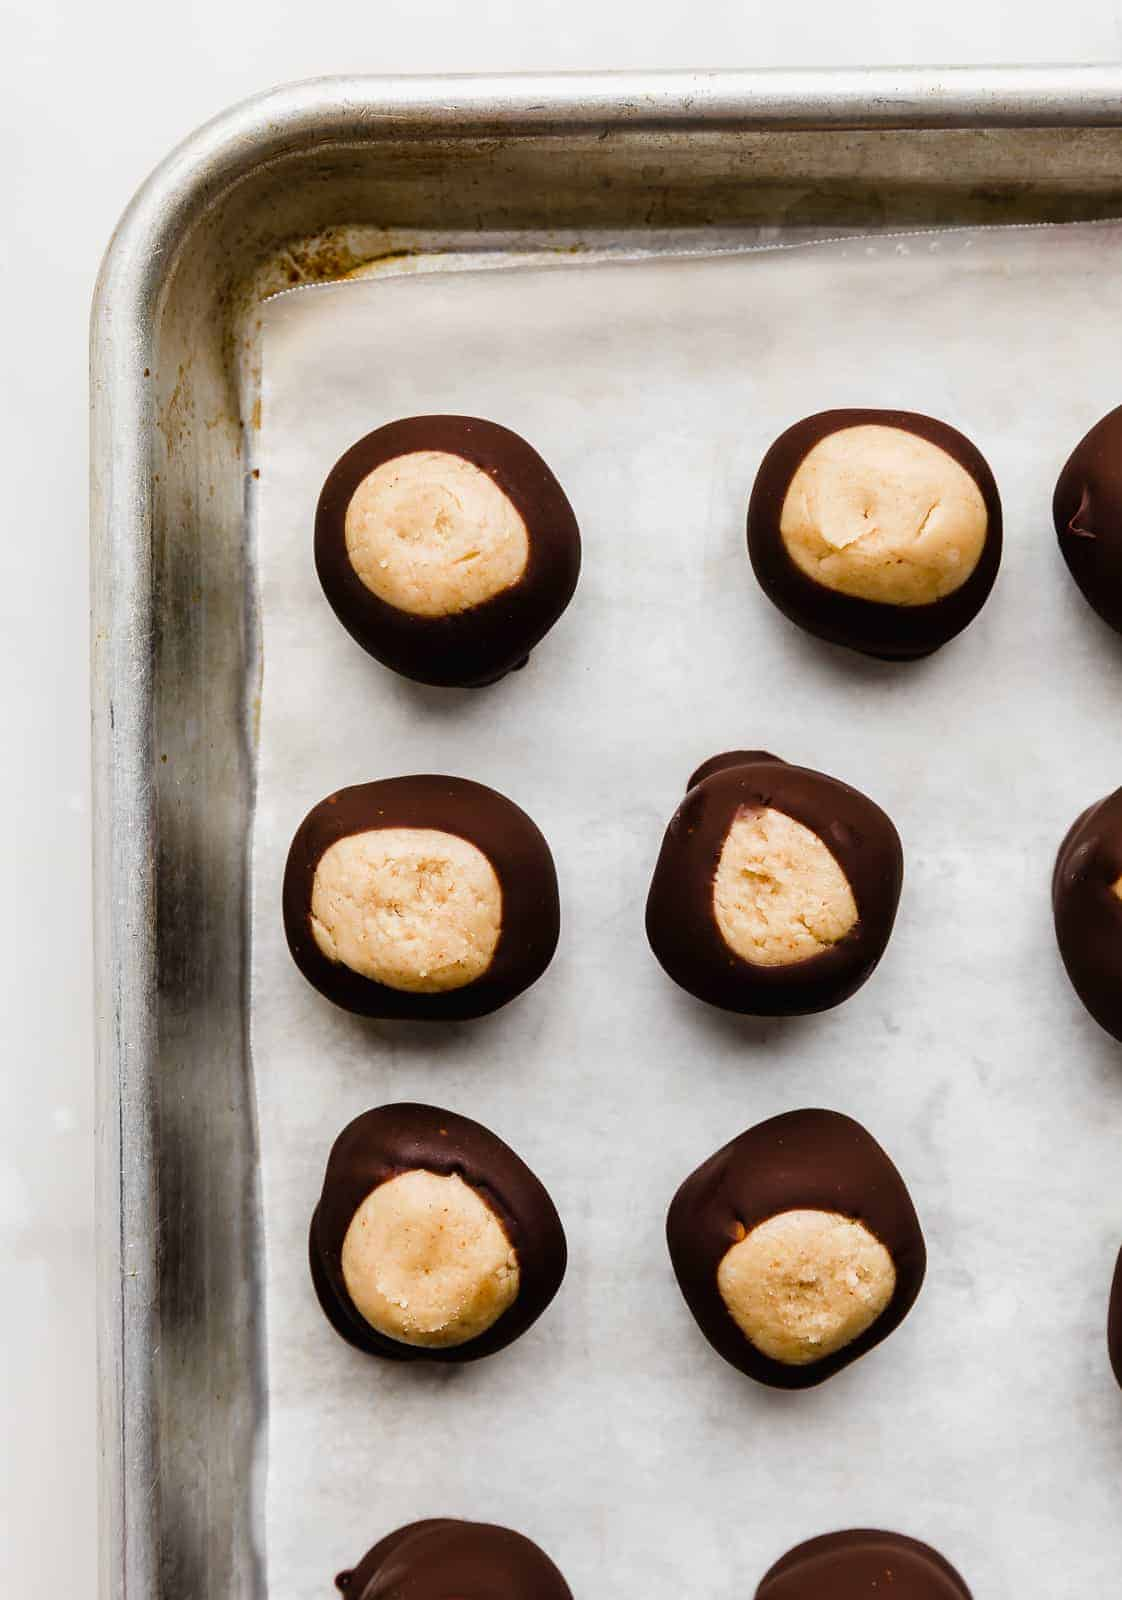 Chocolate dipped buckeyes lined up on a parchment lined baking sheet.